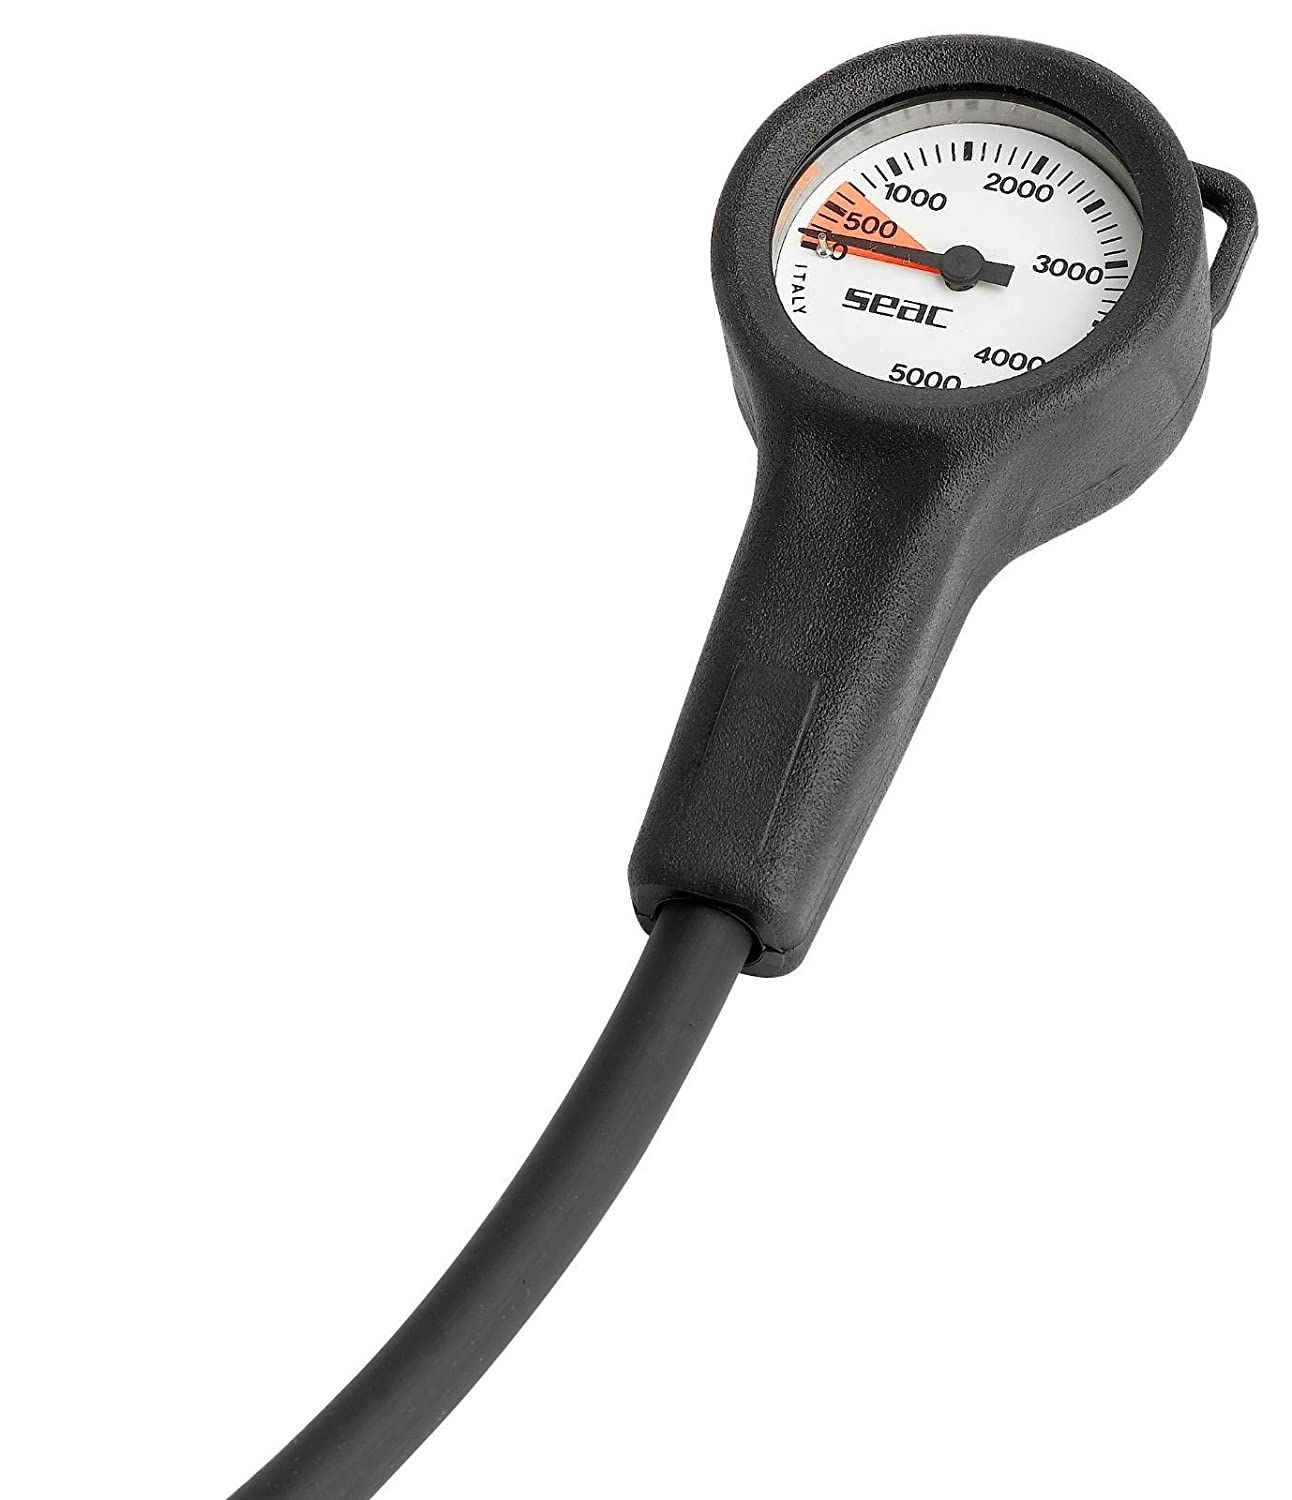 Seac Scuba Analog SPG Pressure or Depth Gauge Console with Brass Housing /& Hose Imperial Black One Gauge Console 2270//B